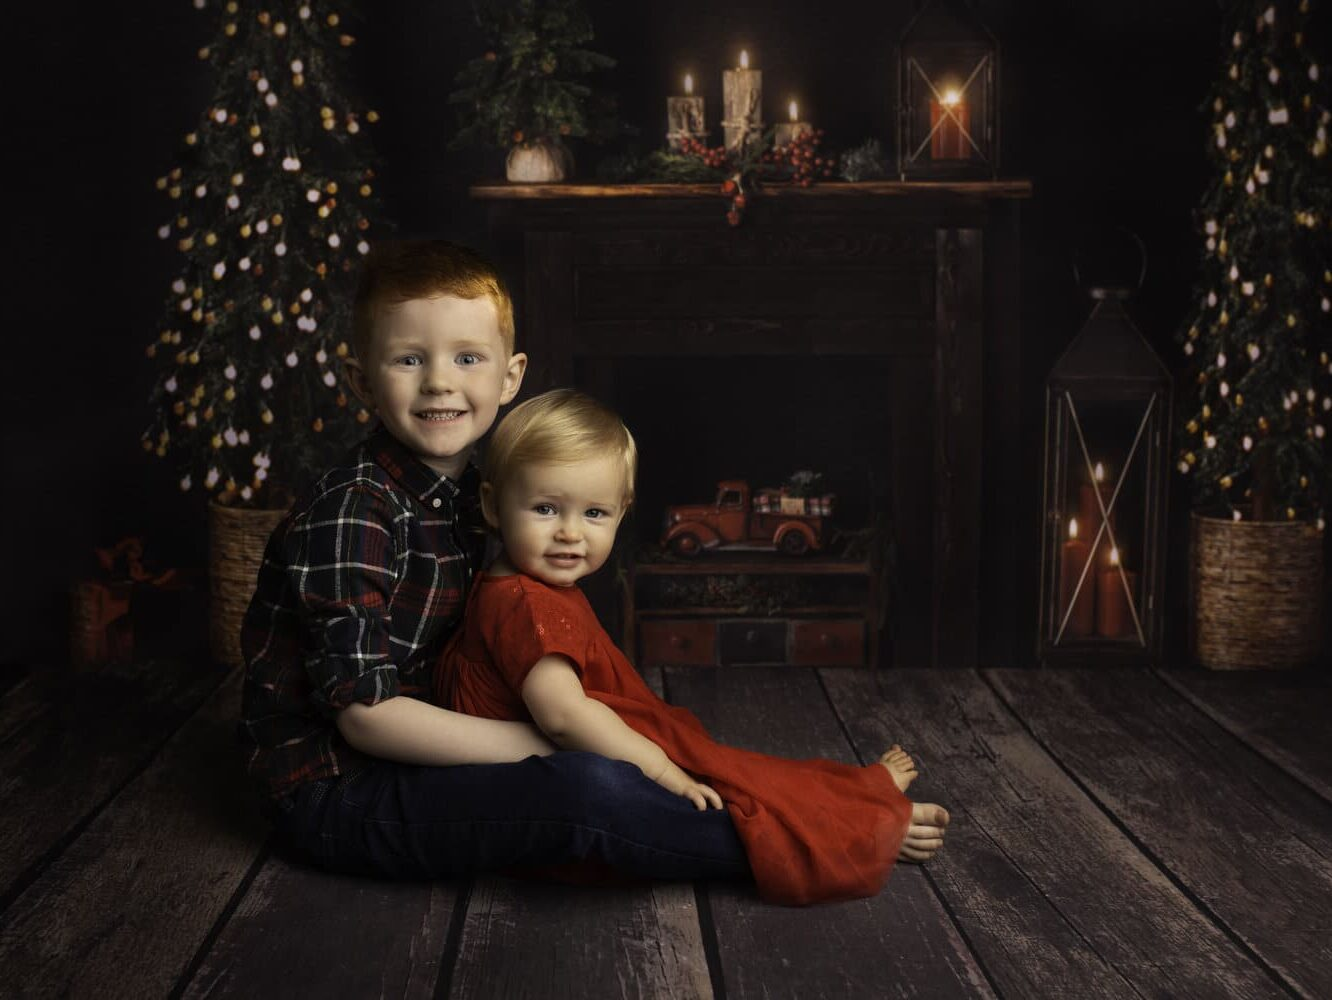 Family Christmas card ideas that have two kids in front of the fireplace | The Dating Dvas